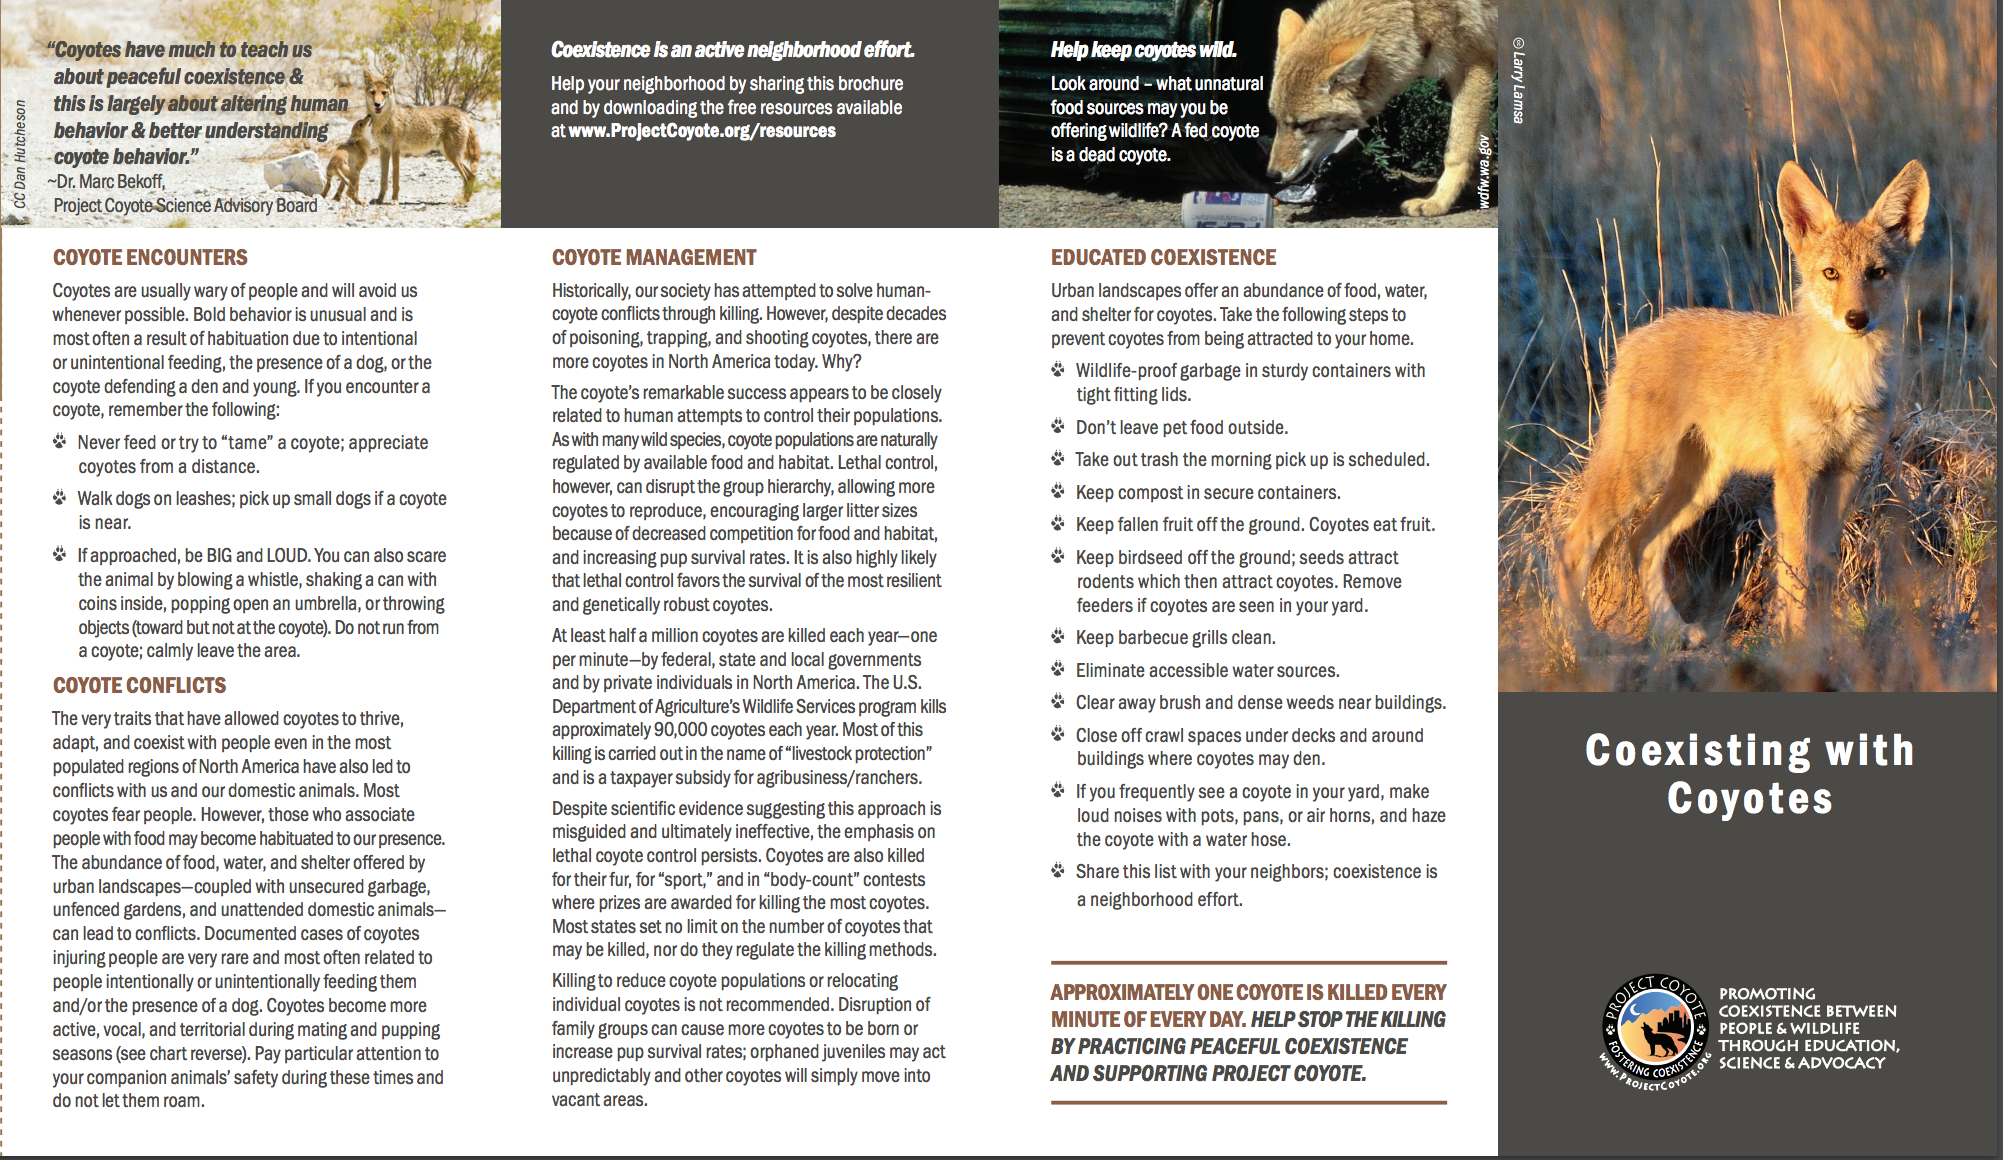 Brochure from Project Coyote